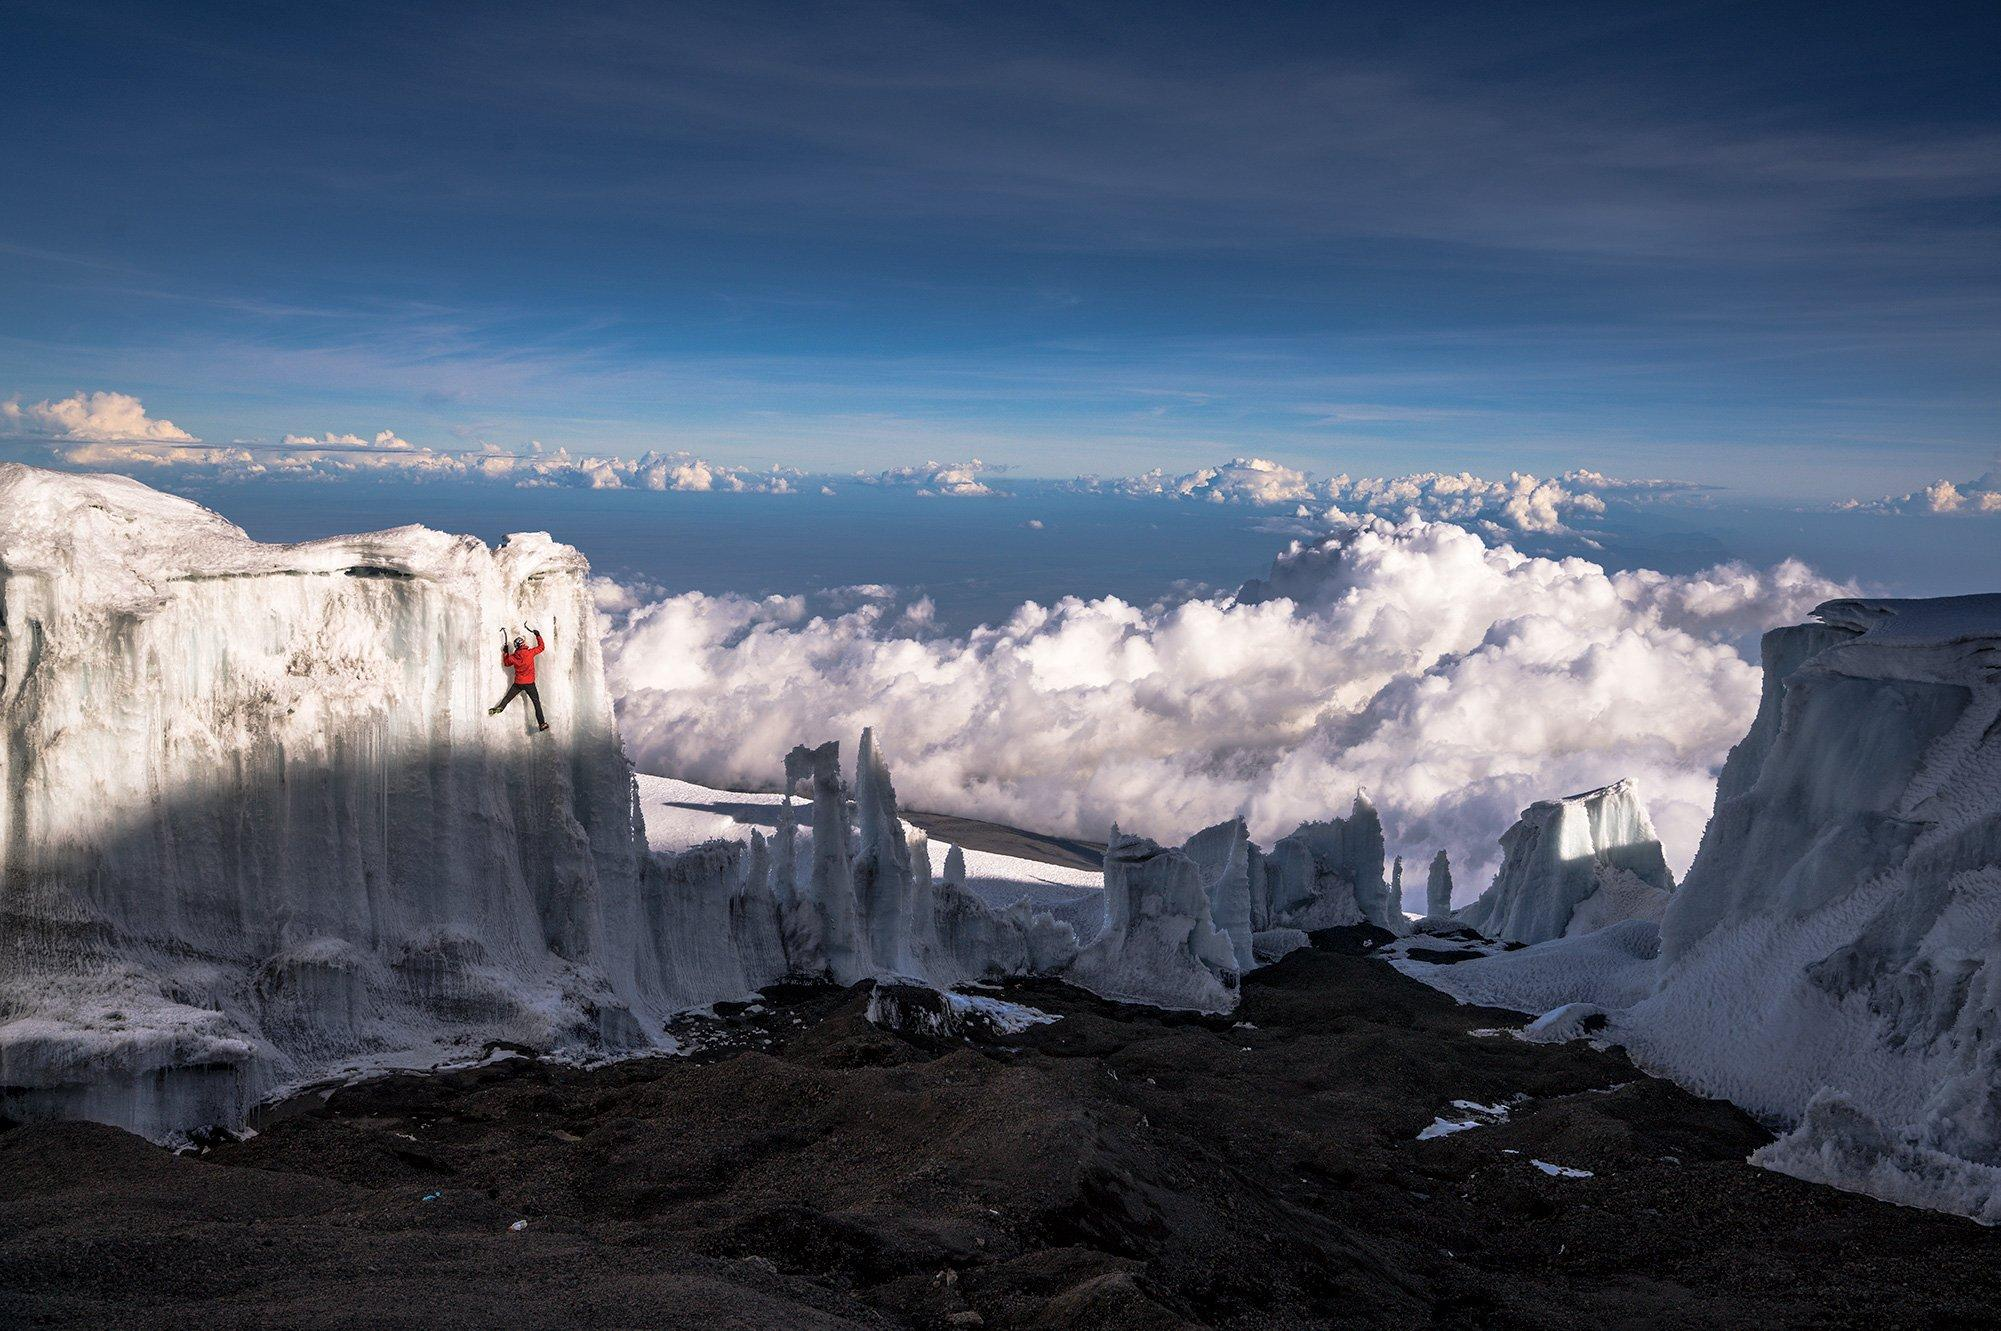 Will Gadd faces climate change realities on Mount Kilimanjaro - GLOBAL HEROES MAGAZINE